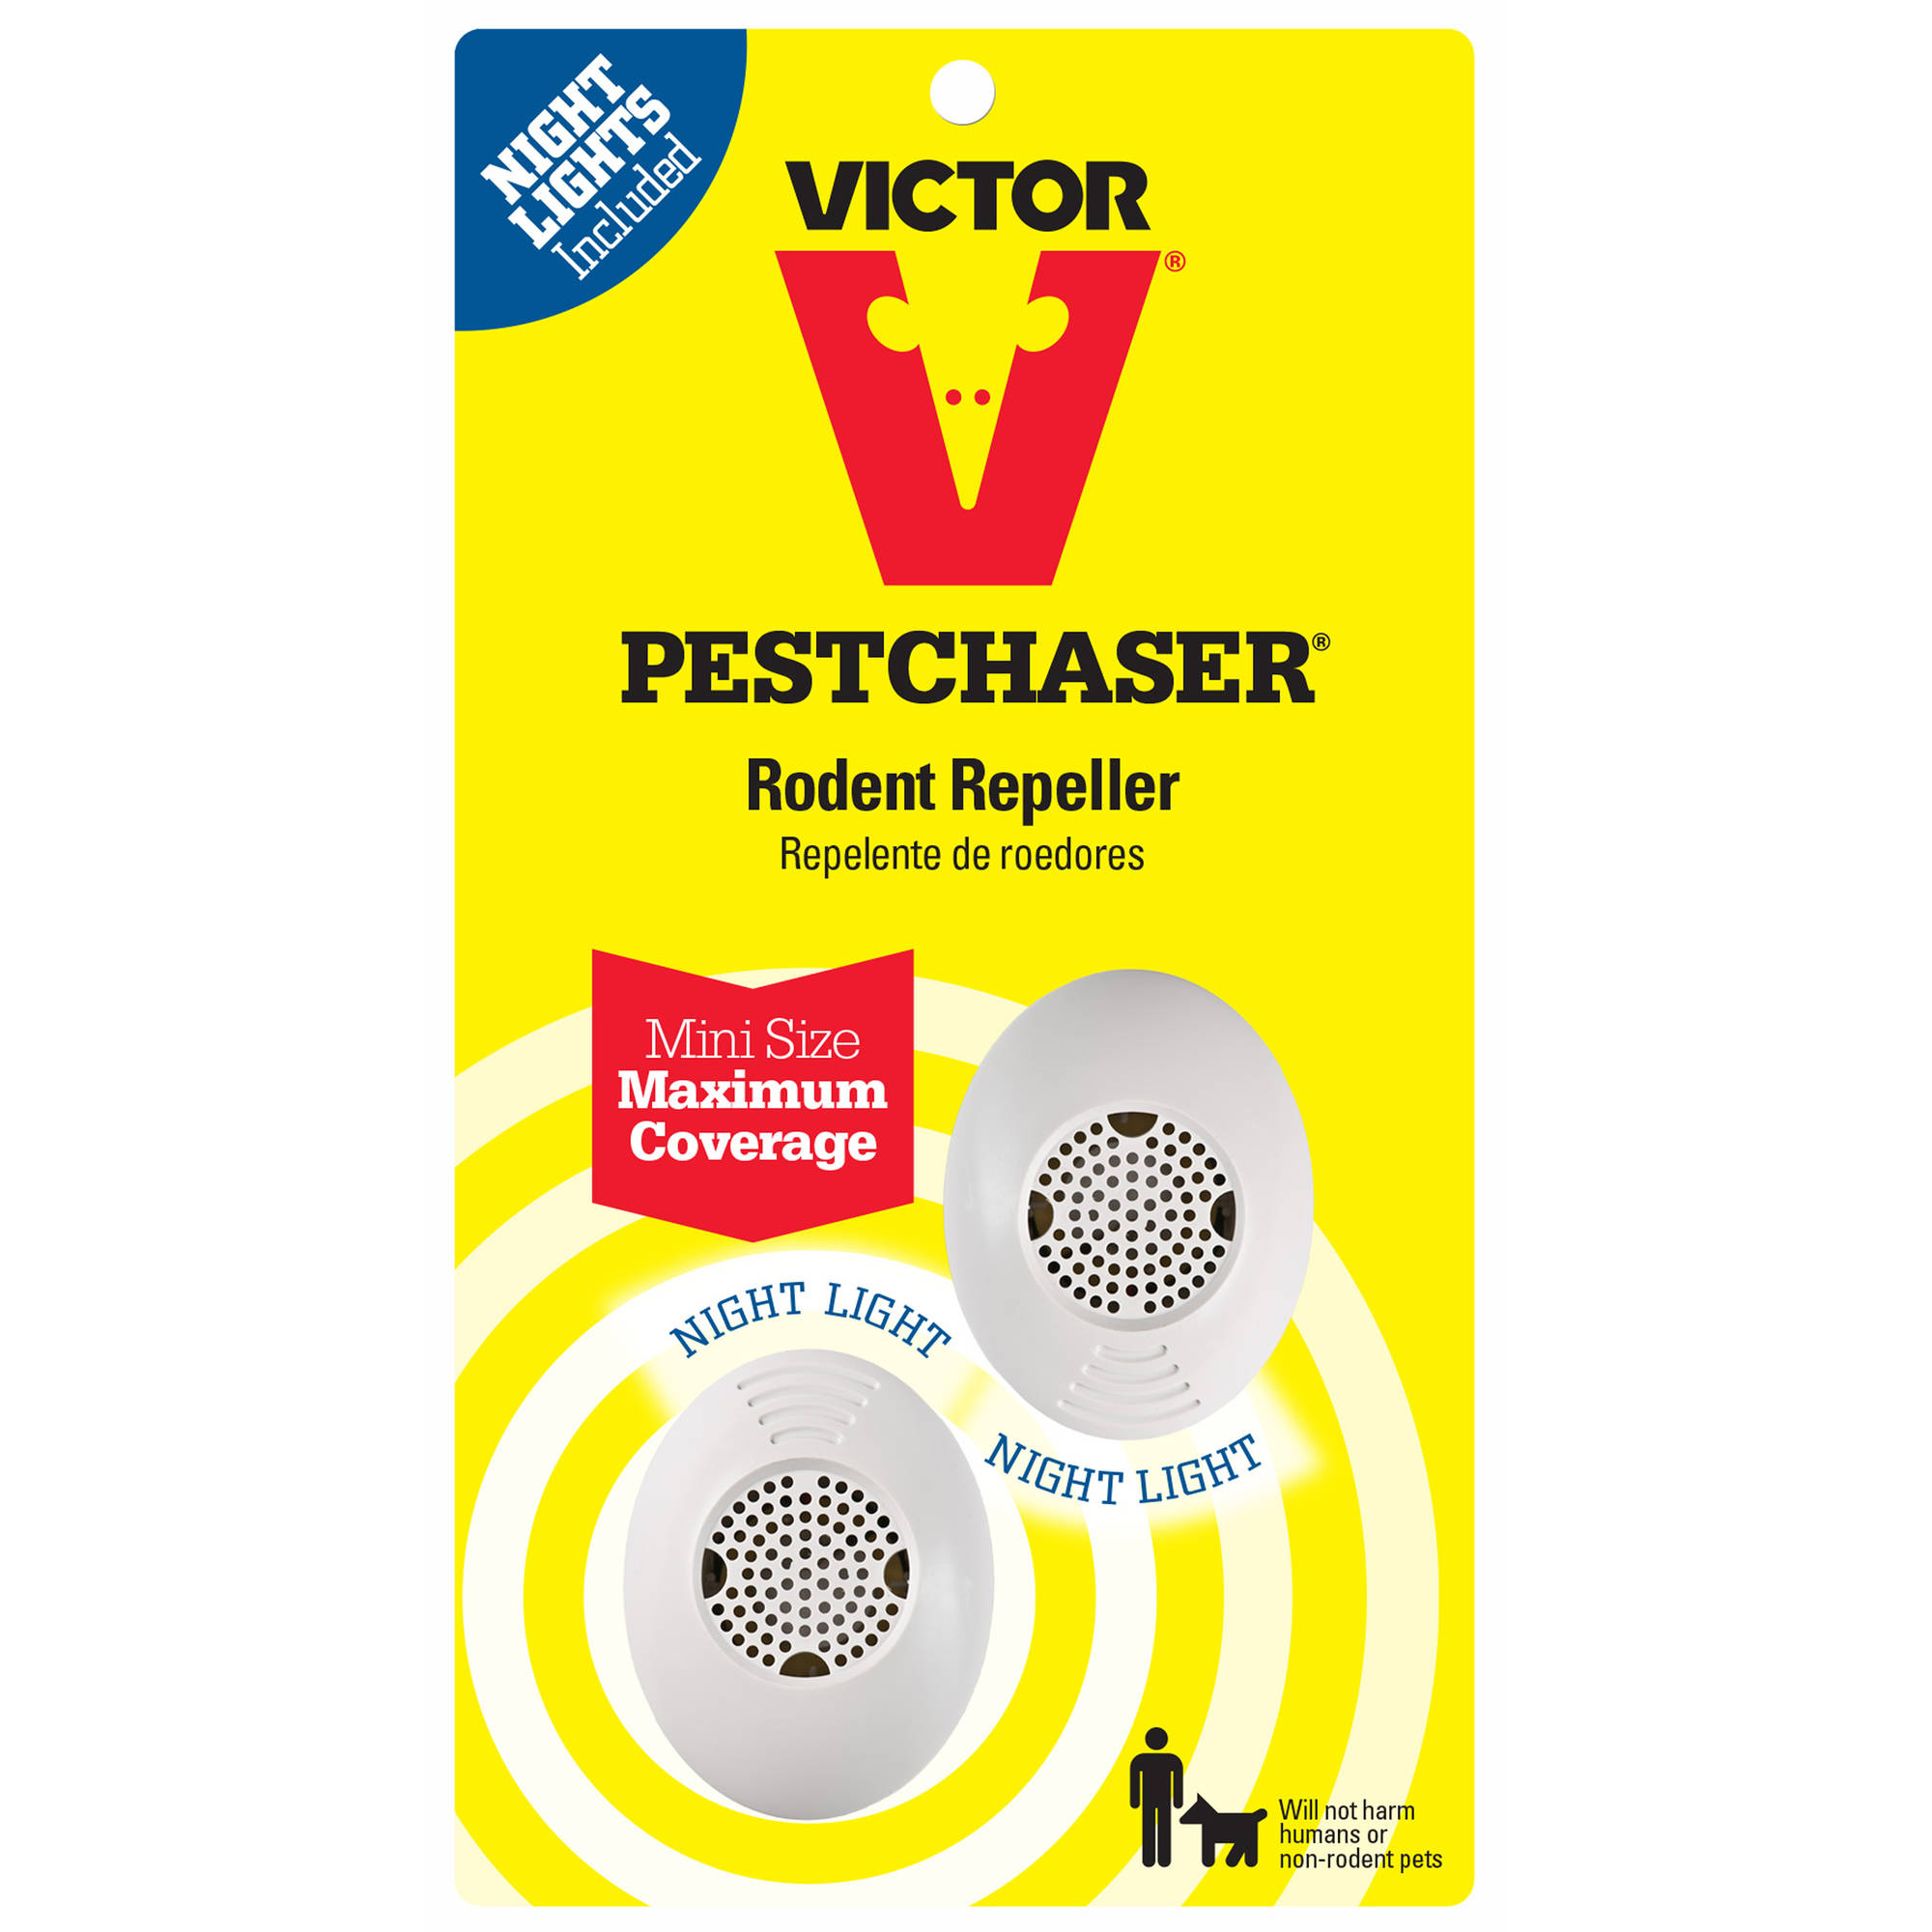 Victor Mini PestChaser Rodent Repeller with Nightlight, 2-Pack